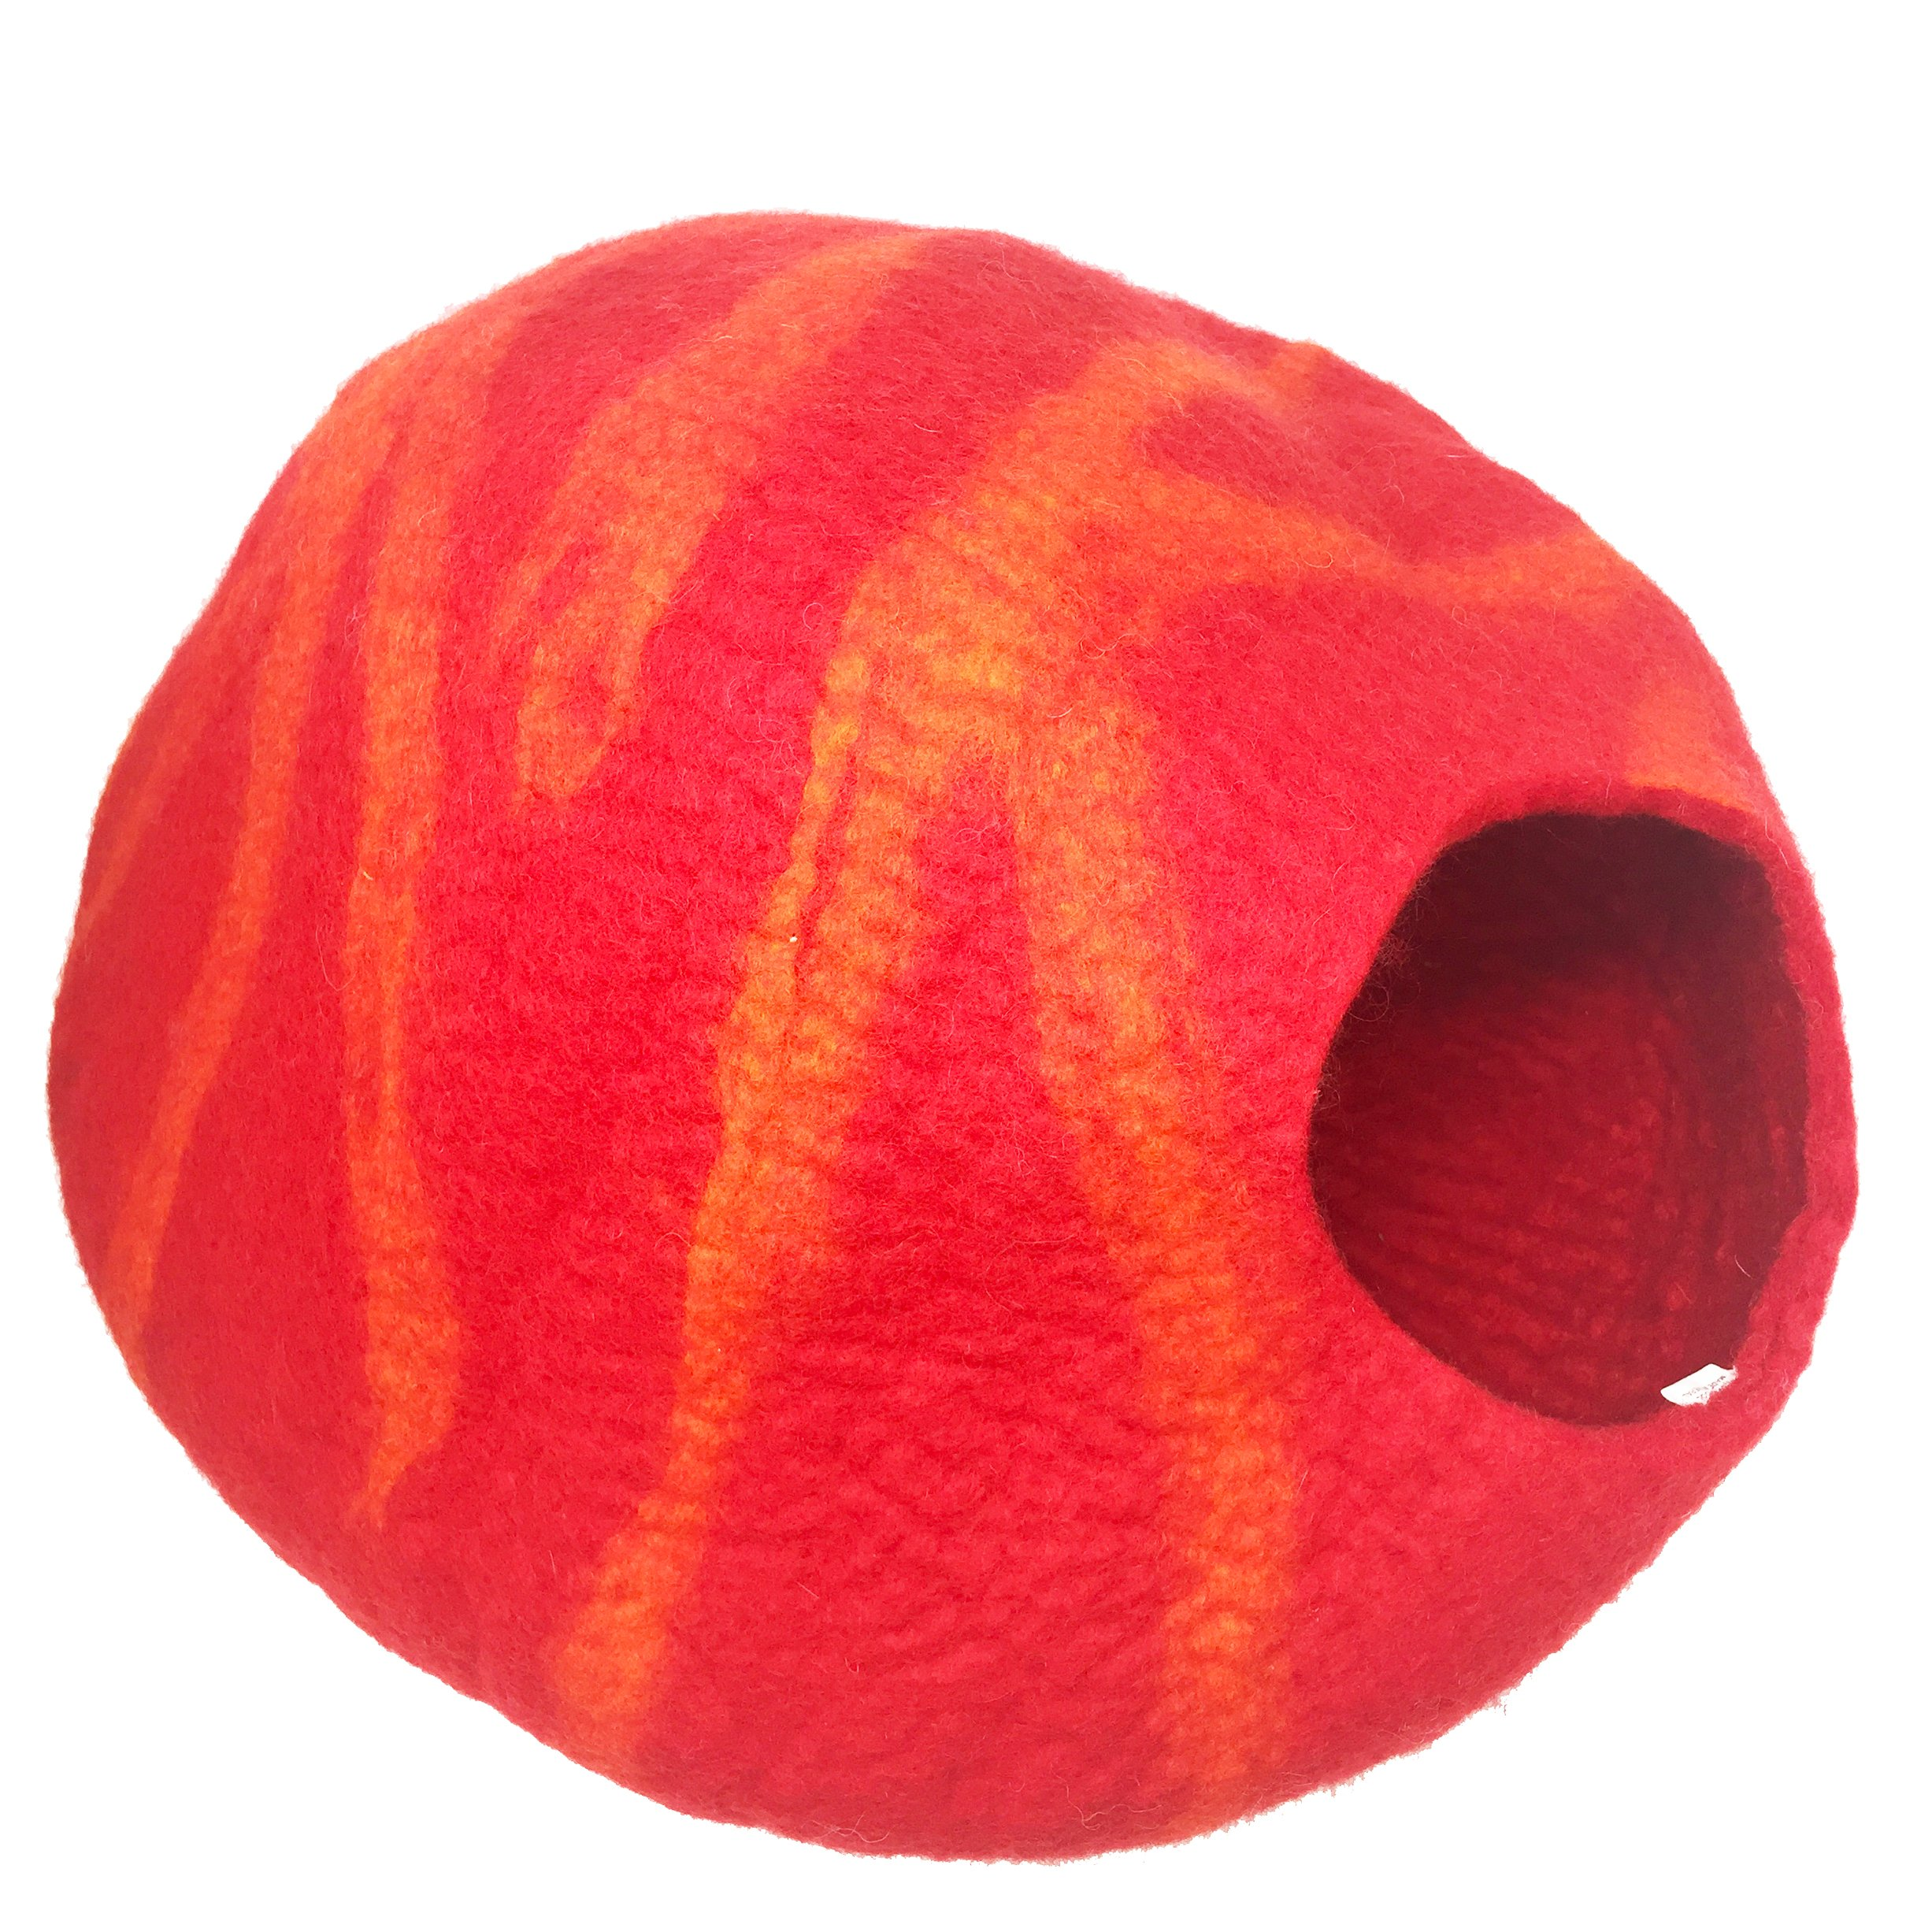 Juccini Handcrafted Felted Wool Cat Cave Bed for Cat and Kittens – Felted from 100% Natural Wool